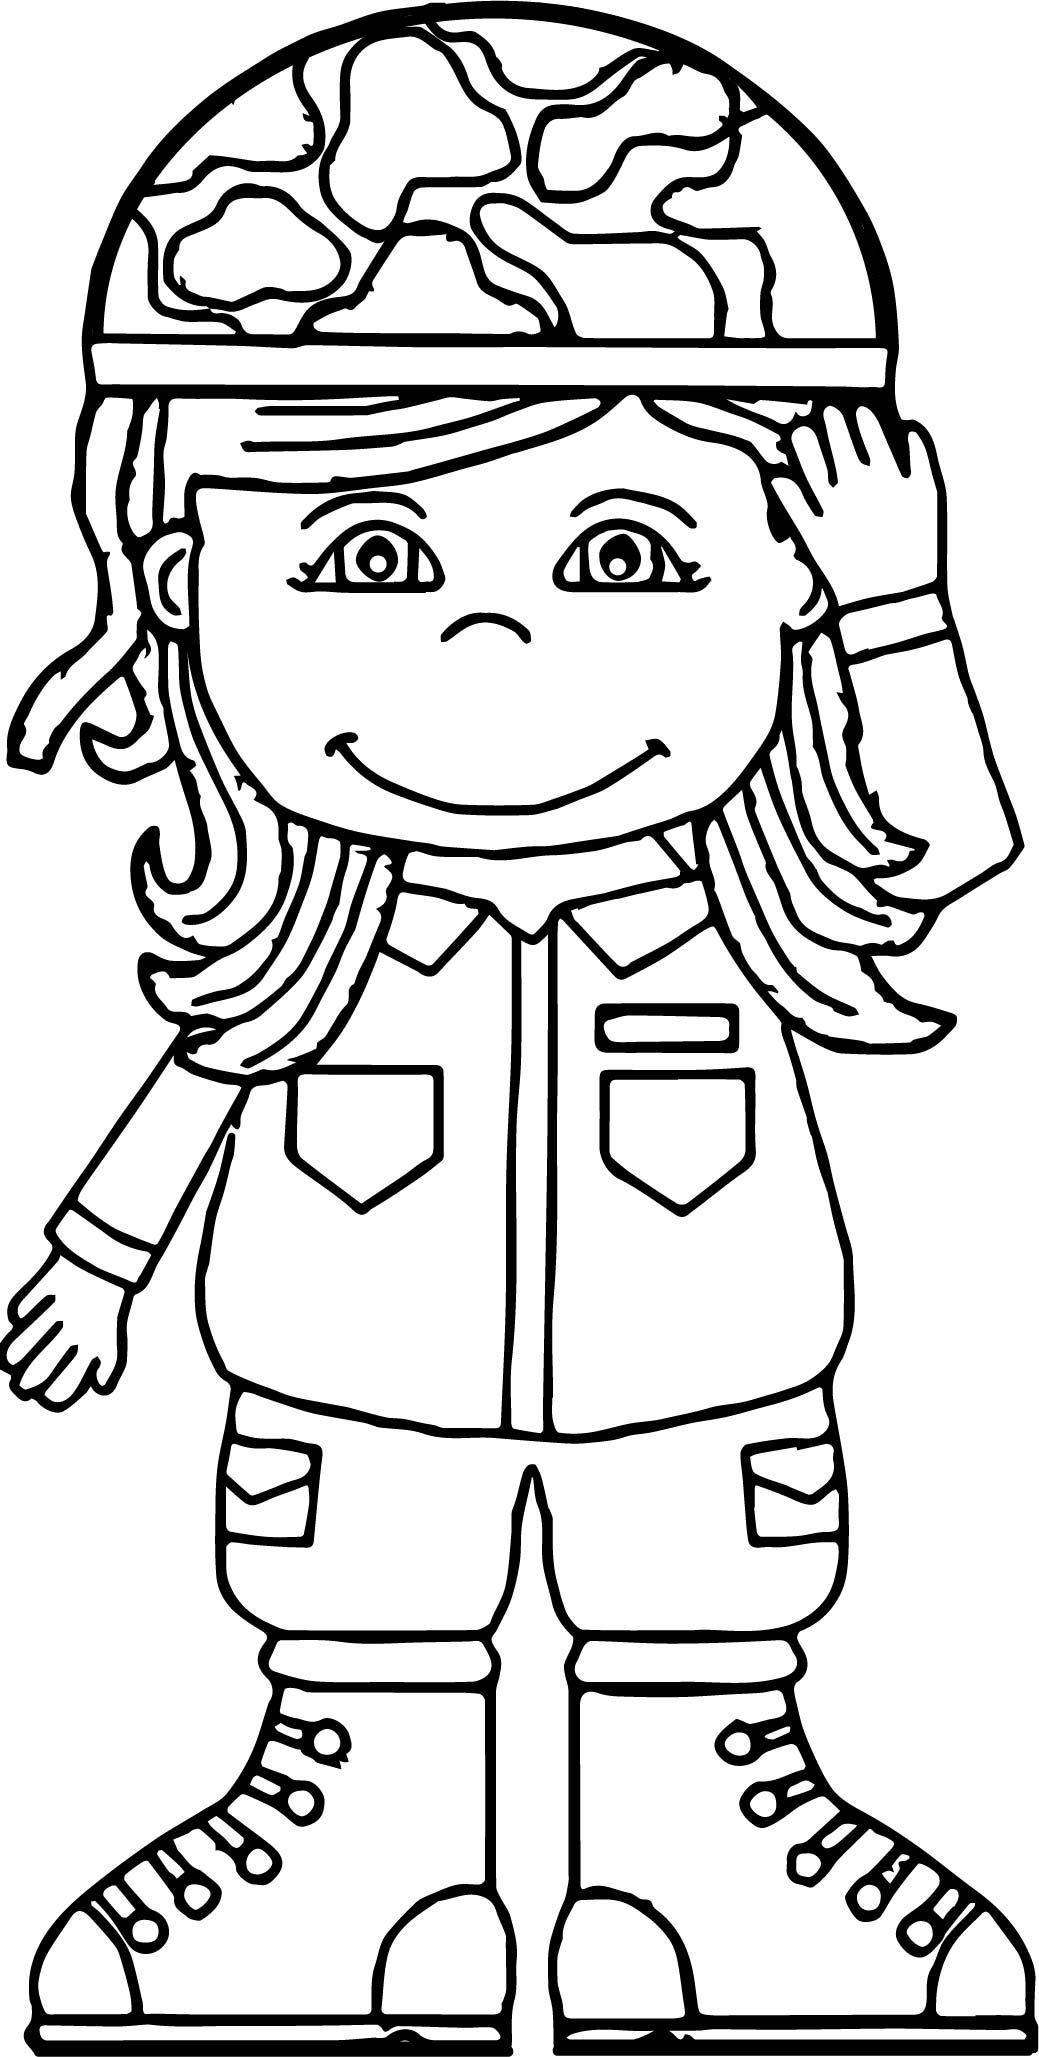 Cool Soldier Girl Coloring Page Coloring Pages For Girls Veterans Day Coloring Page Coloring Pages